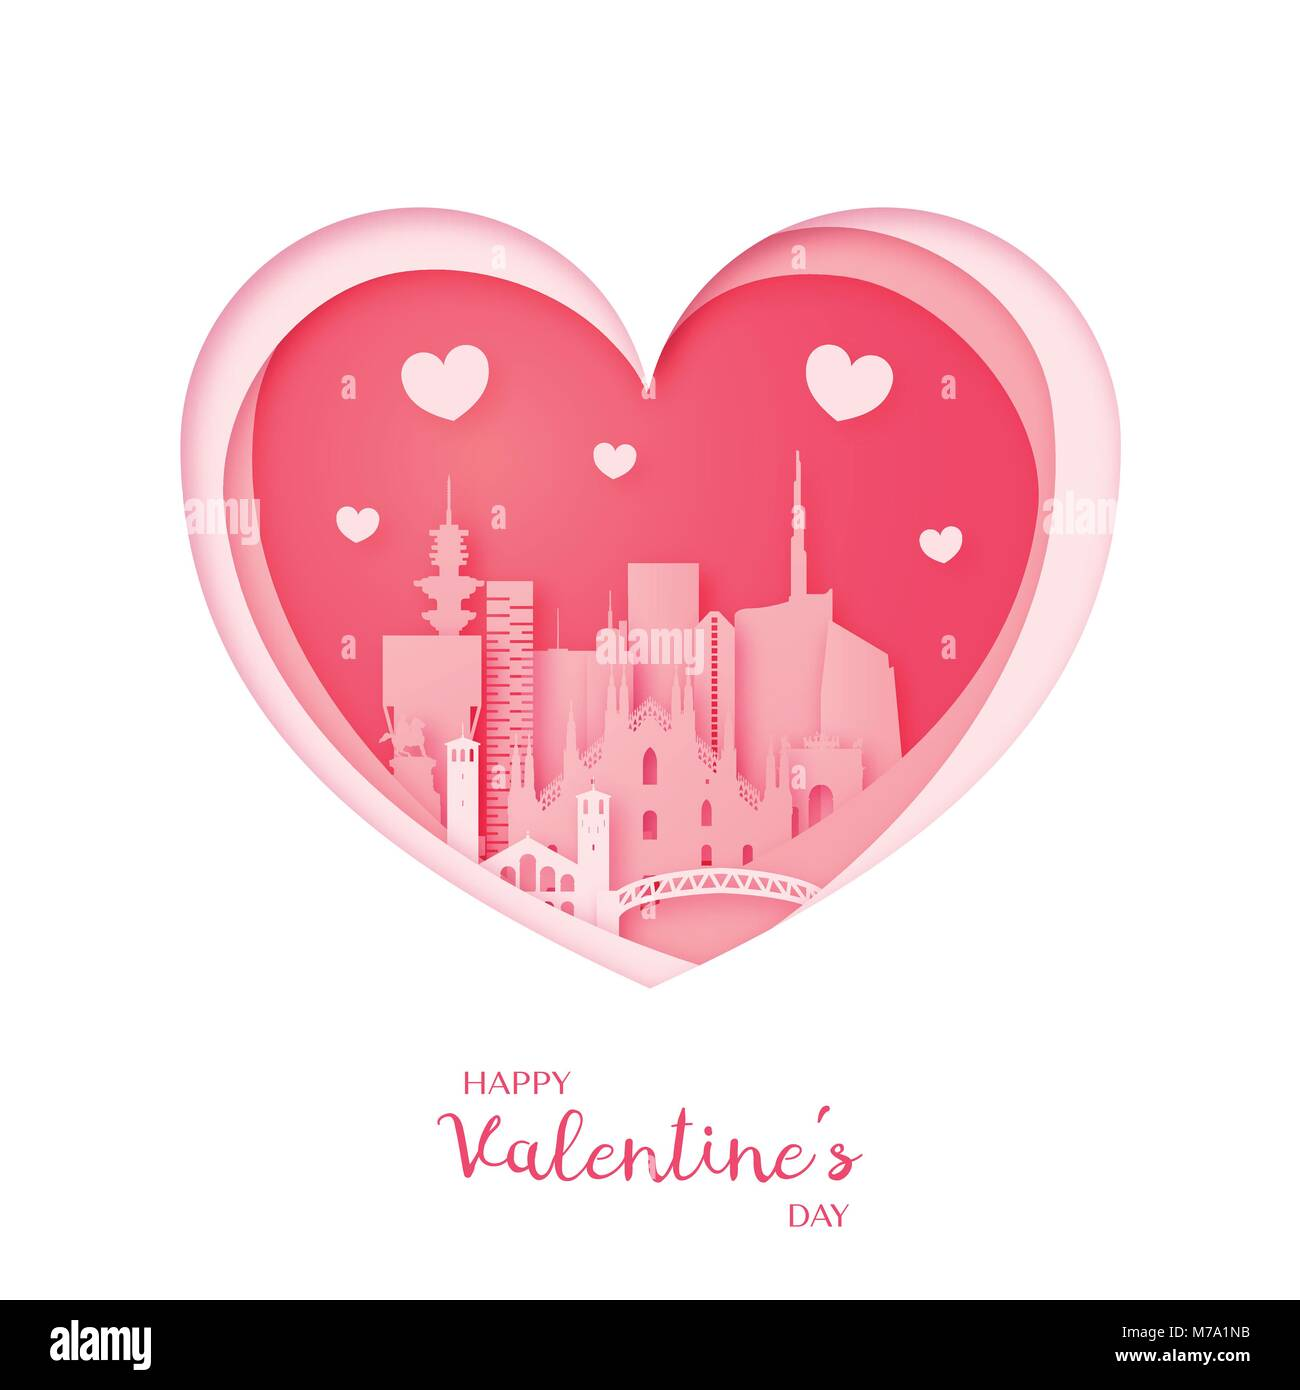 Valentines card. Paper cut heart and city of Milan. Happy Valentine's day. Vector illustration. - Stock Vector